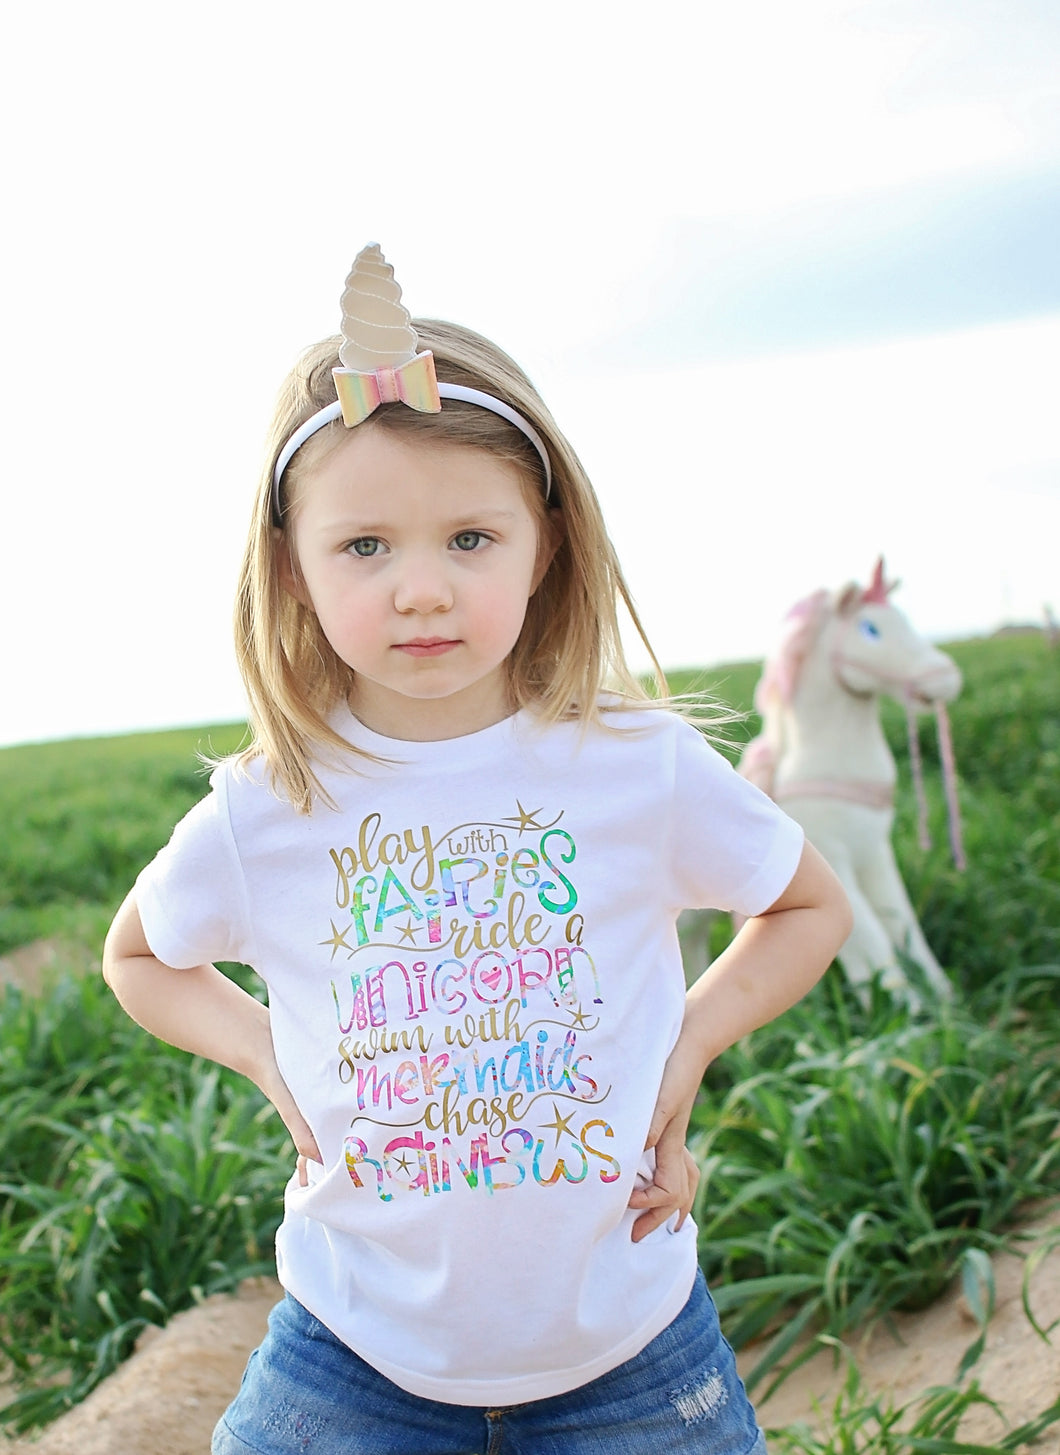 PLAY WITH FAIRIES, RIDE A UNICORN, SWIM WITH MERMAIDS, CHASE RAINBOWS Youth T Shirt